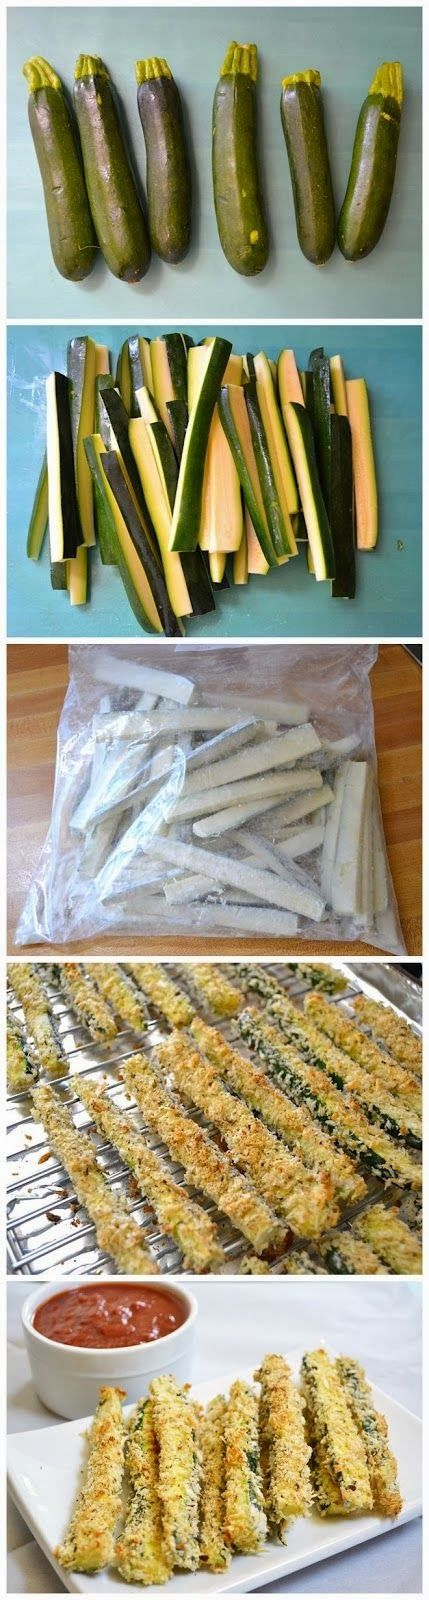 How to baked zucchini fries                                                                                                                                                                                 More